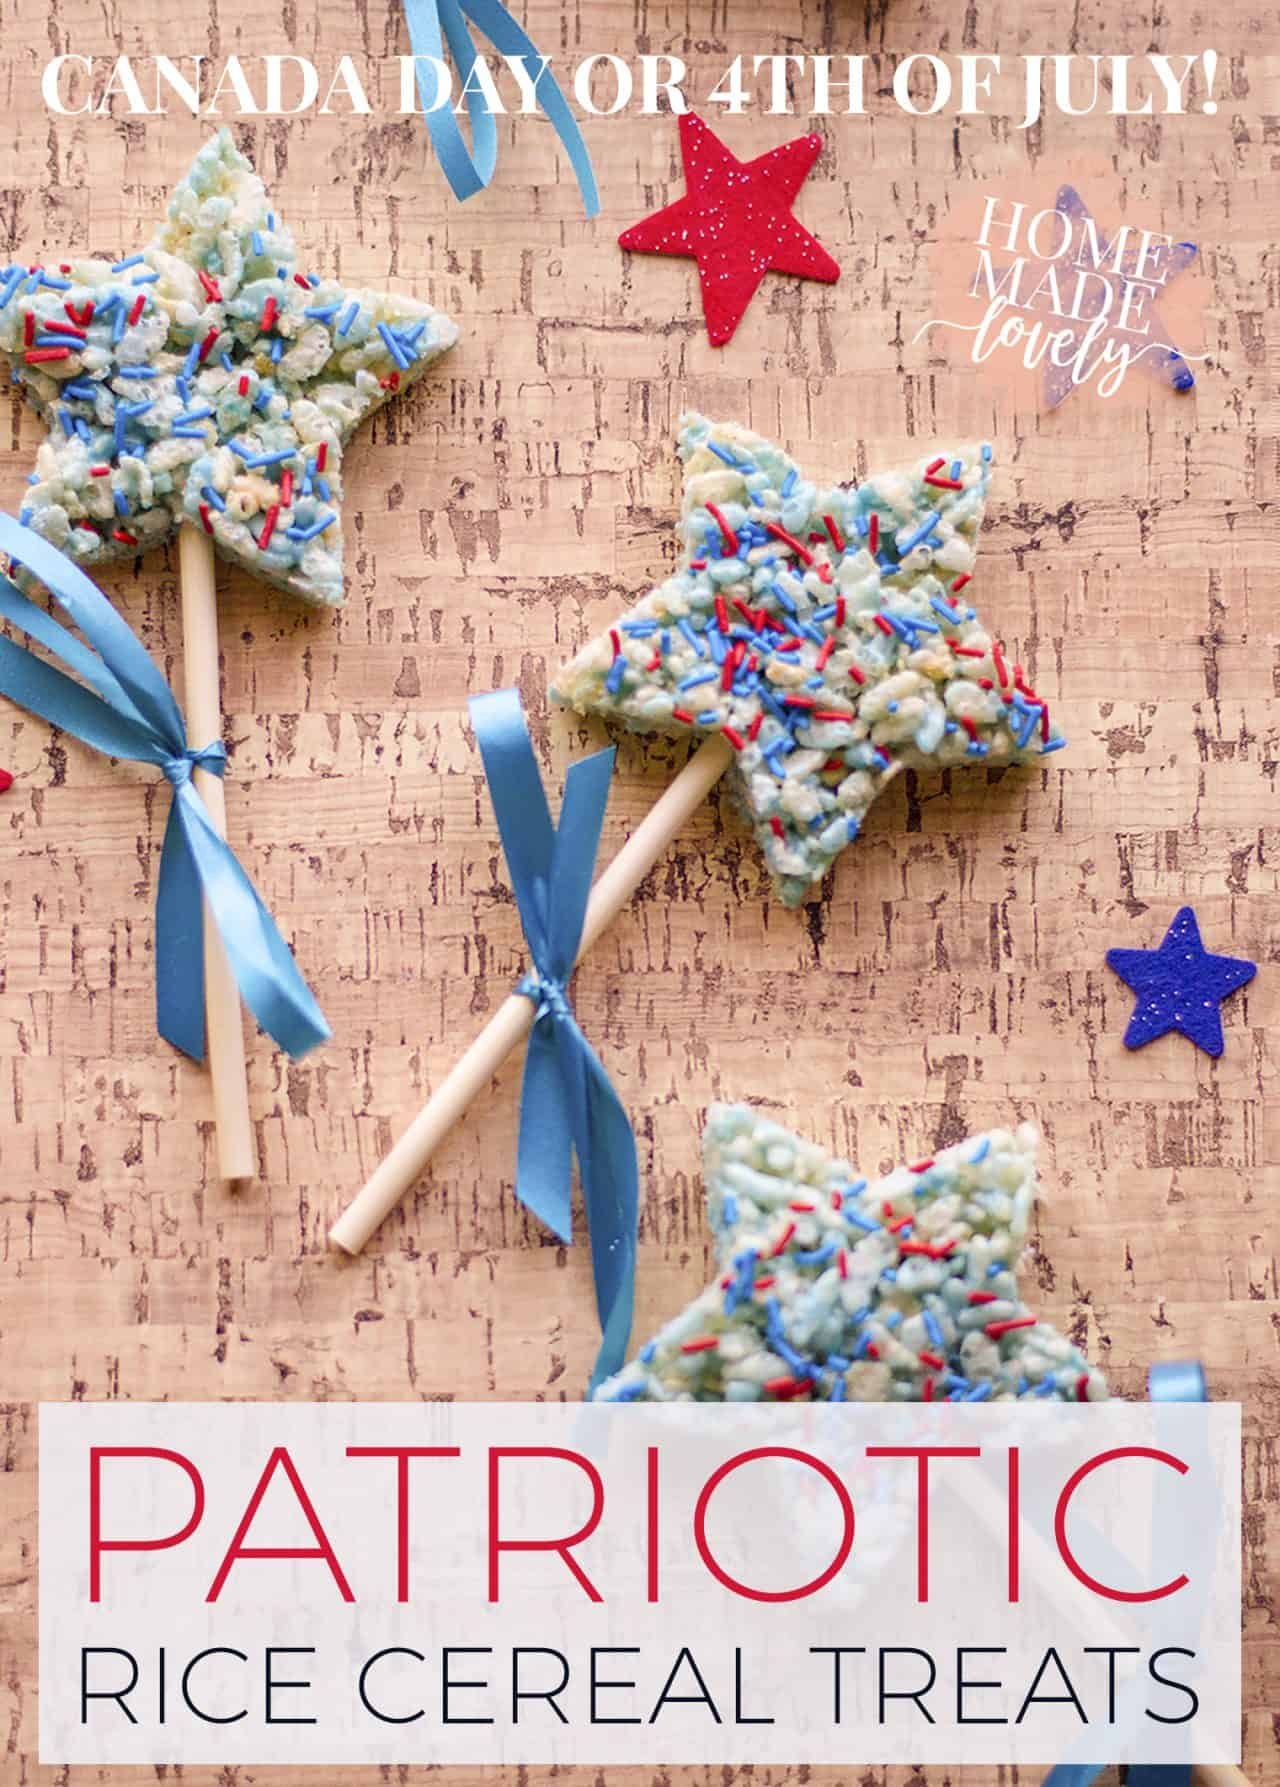 These patriotic rice cereal treats are super easy to make - and can be customized for either Canada Day or the Fourth of July just by changing the food coloring and sprinkles!